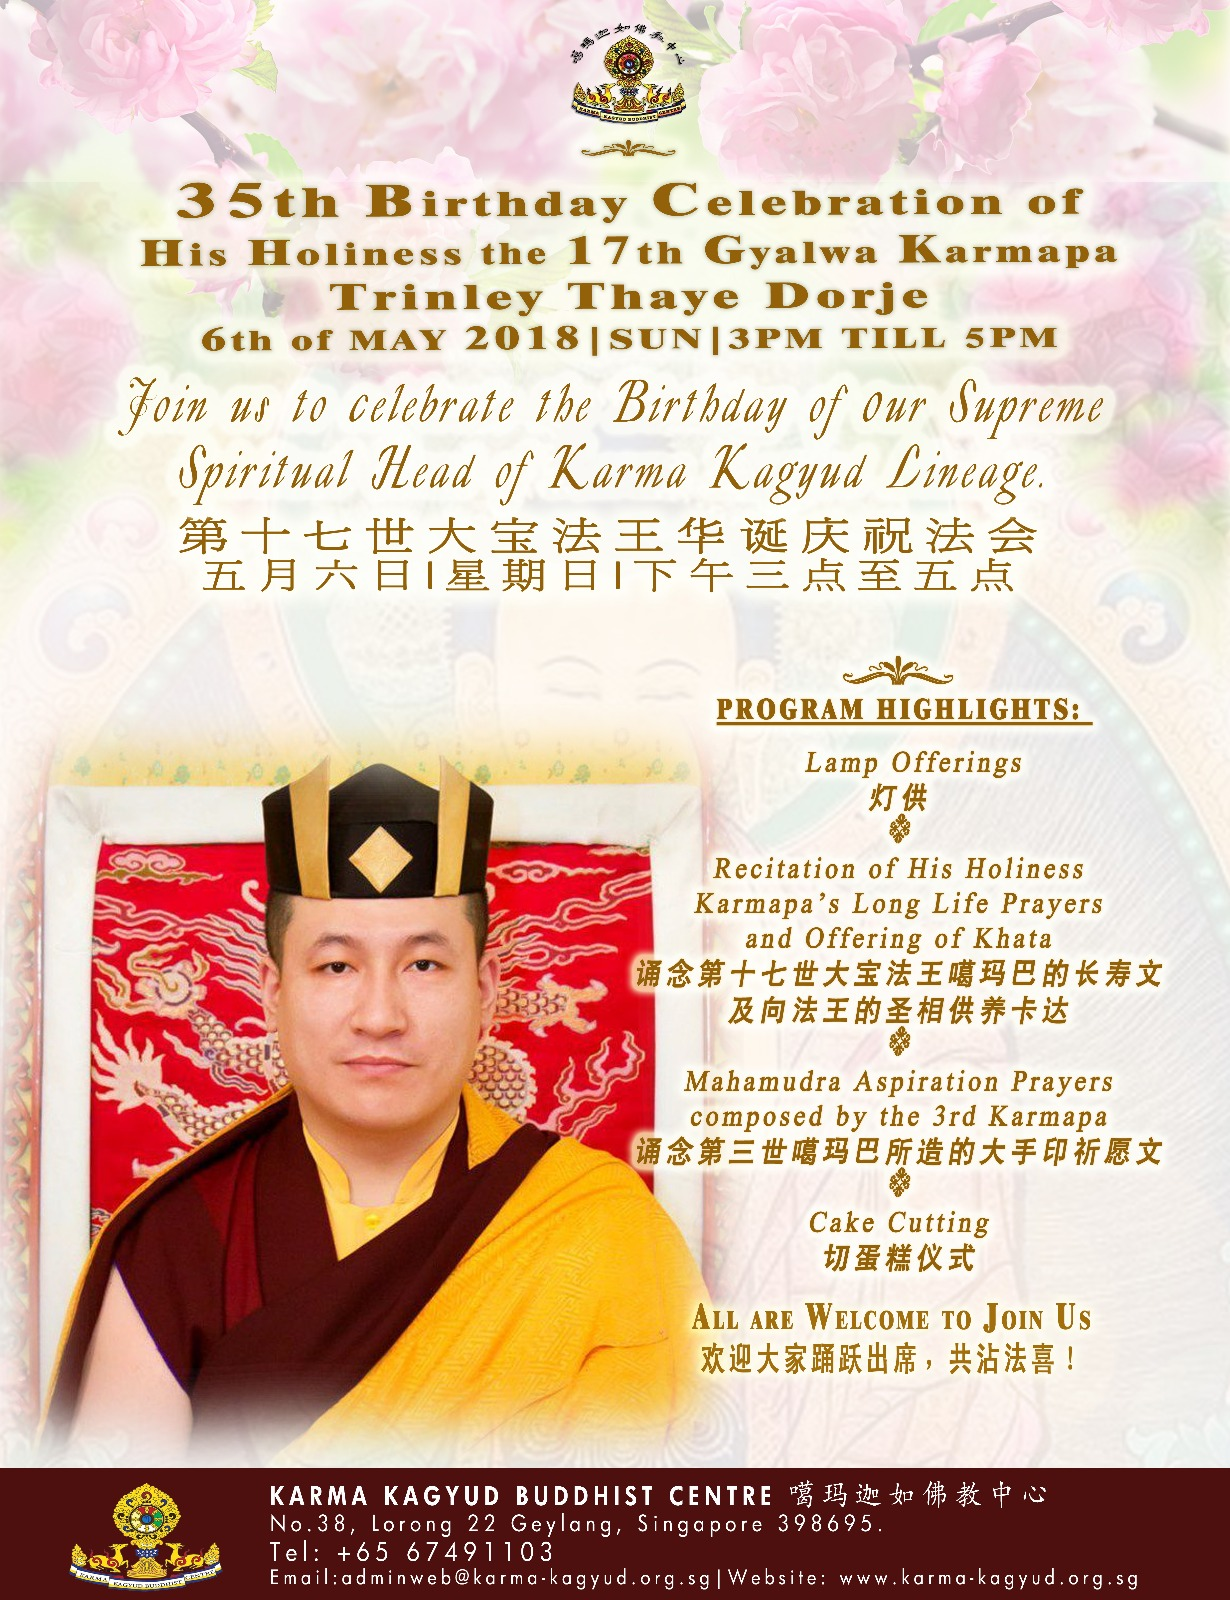 Birthday celebration of his holiness download form altavistaventures Choice Image